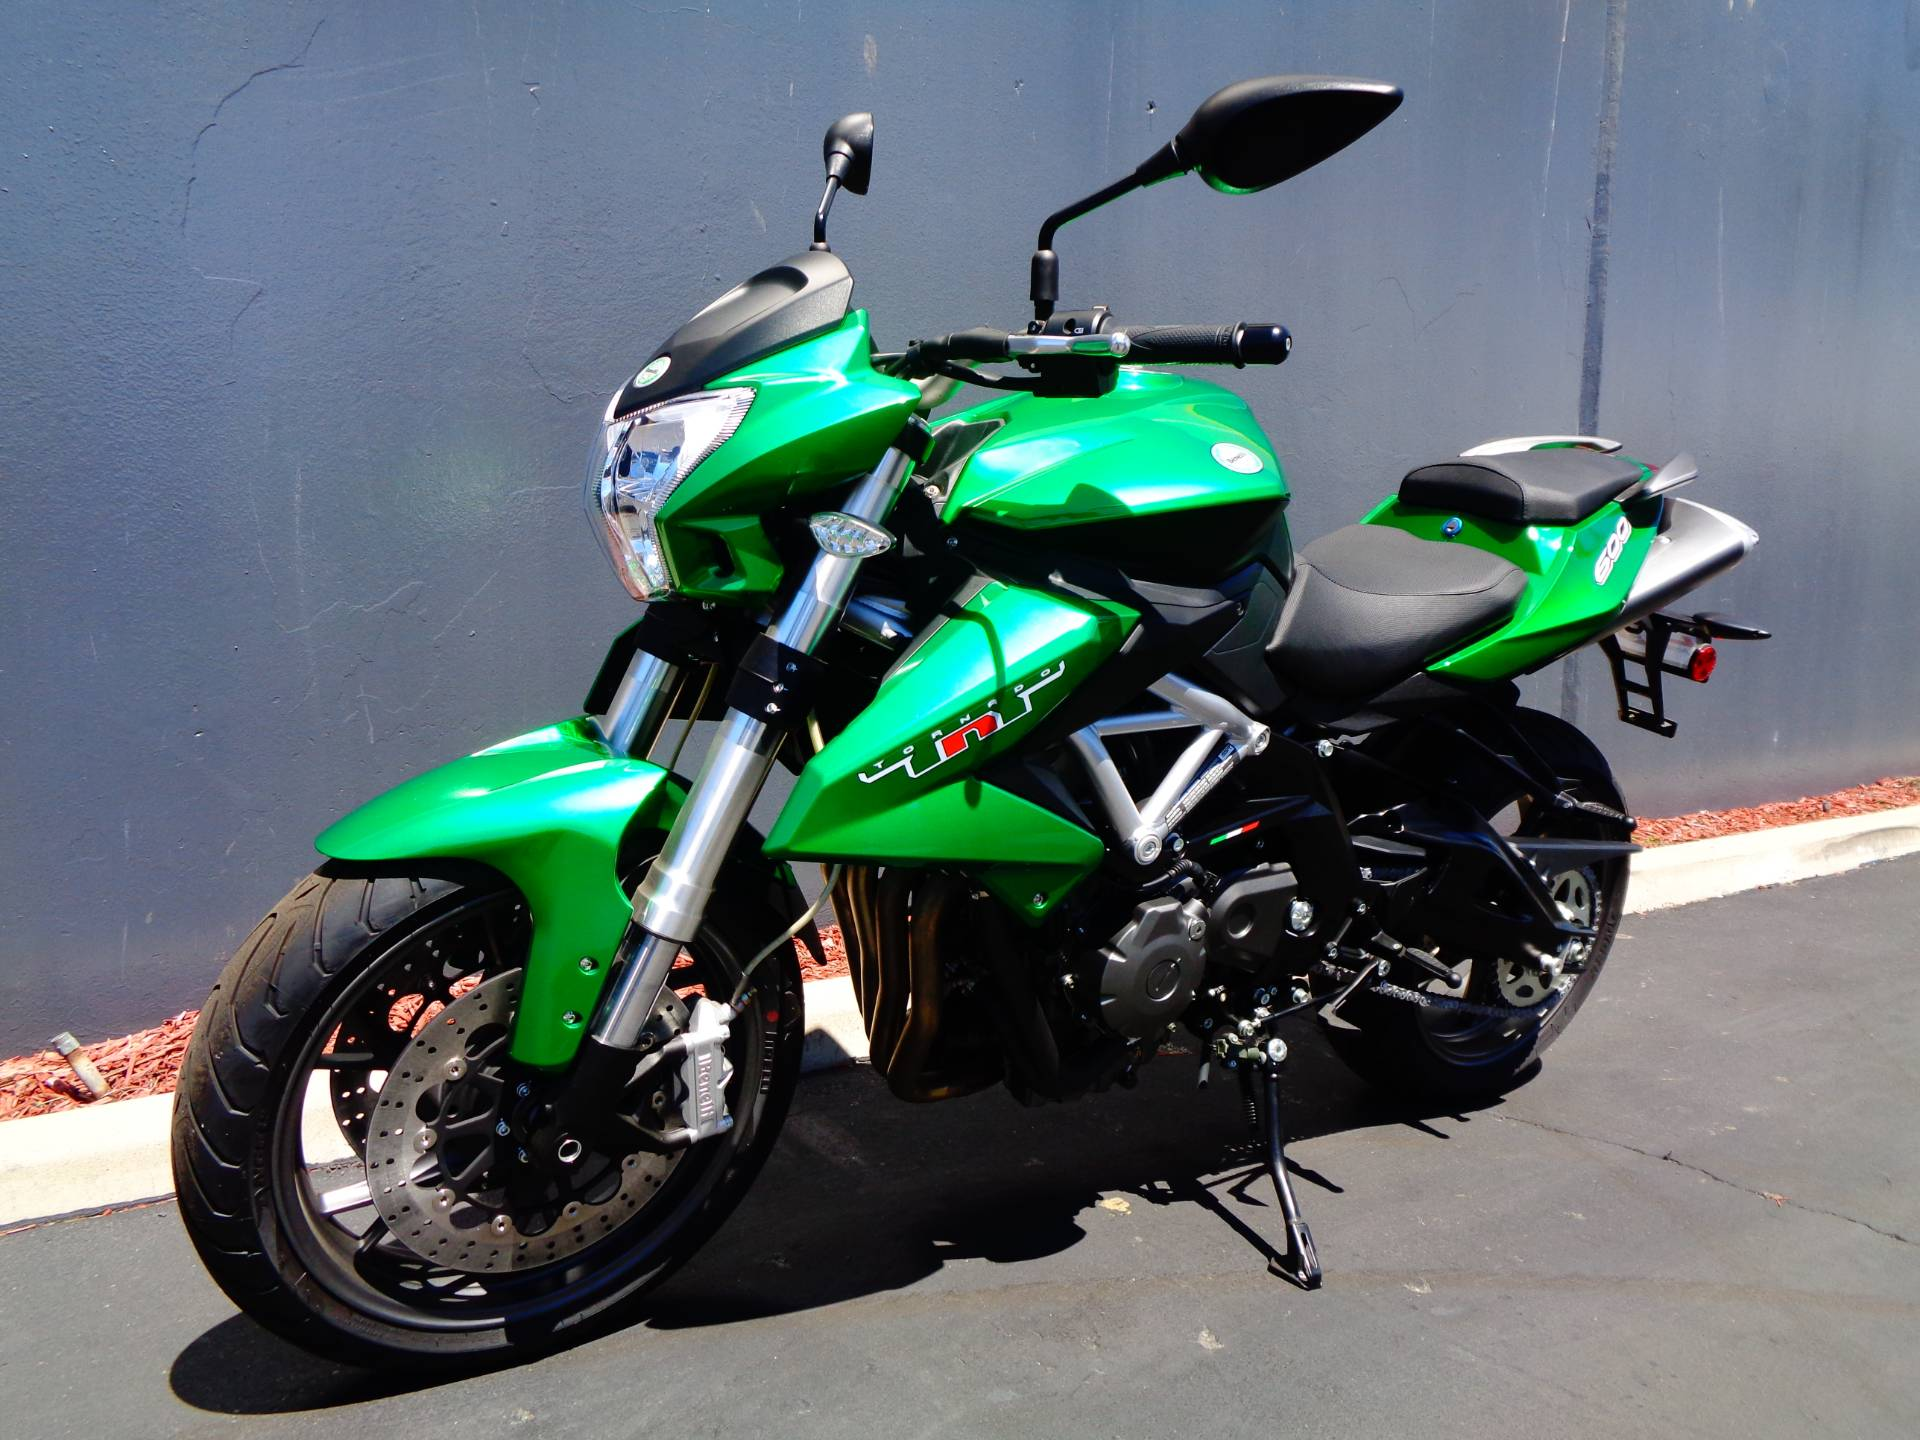 2017 Benelli TNT 600 in Chula Vista, California - Photo 14